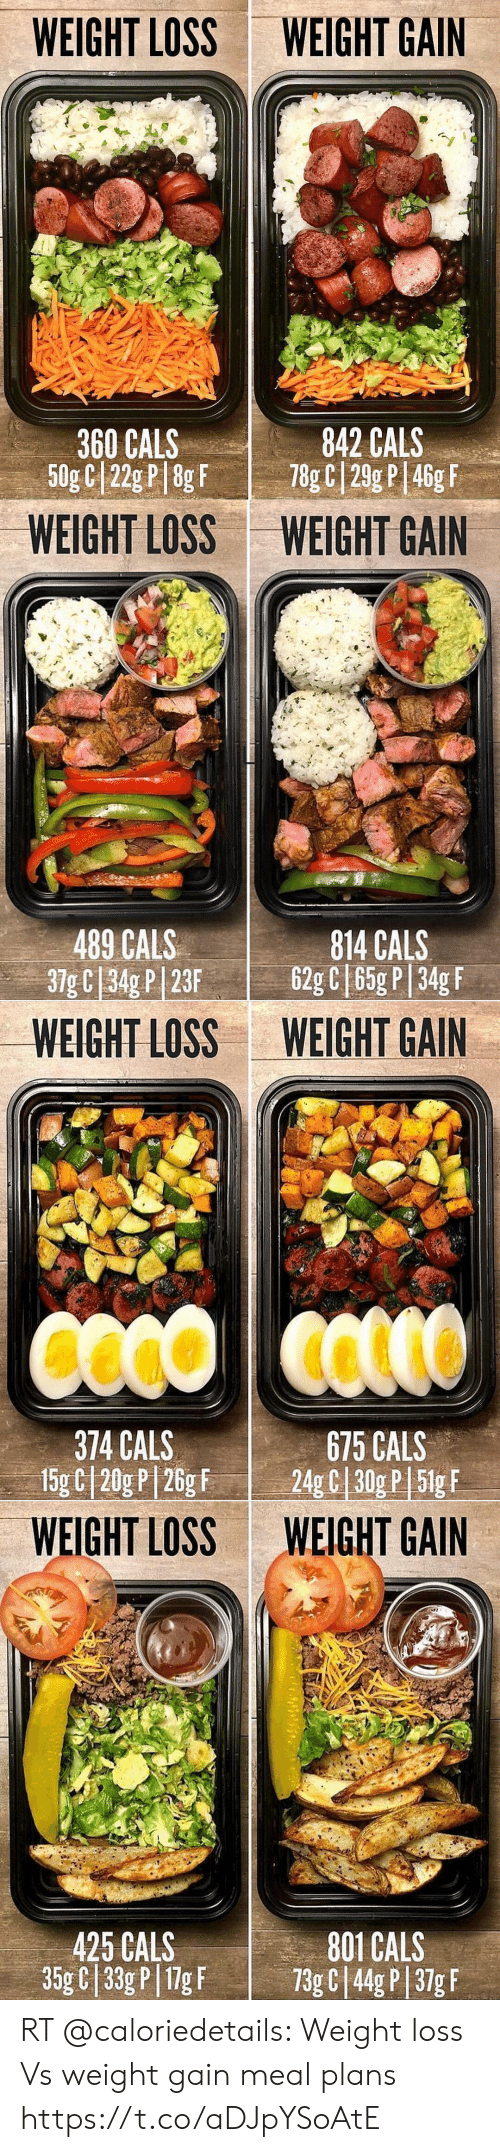 Weight Loss, Gain, and Weight Gain: WEIGHT LOSS  WEIGHT GAIN  842 CALS  78g C 29g P 46g F  360 CALS  50g C 22g P 8g F   WEIGHT LOSS  WEIGHT GAIN  489 CALS  37g C 34g P| 23F  814 CALS  62g C 65g P 34g F   WEIGHT LOSS  WEIGHT GAIN  374 CALS  15g C|20g P |26g F  675 CALS  24g C 30g P 5lg F   WEIGHT LOSS  WEIGHT GAIN  801 CALS  73g C 44g P 37g F  425 CALS  35g C 33g P 1g F RT @caloriedetails: Weight loss Vs weight gain meal plans https://t.co/aDJpYSoAtE